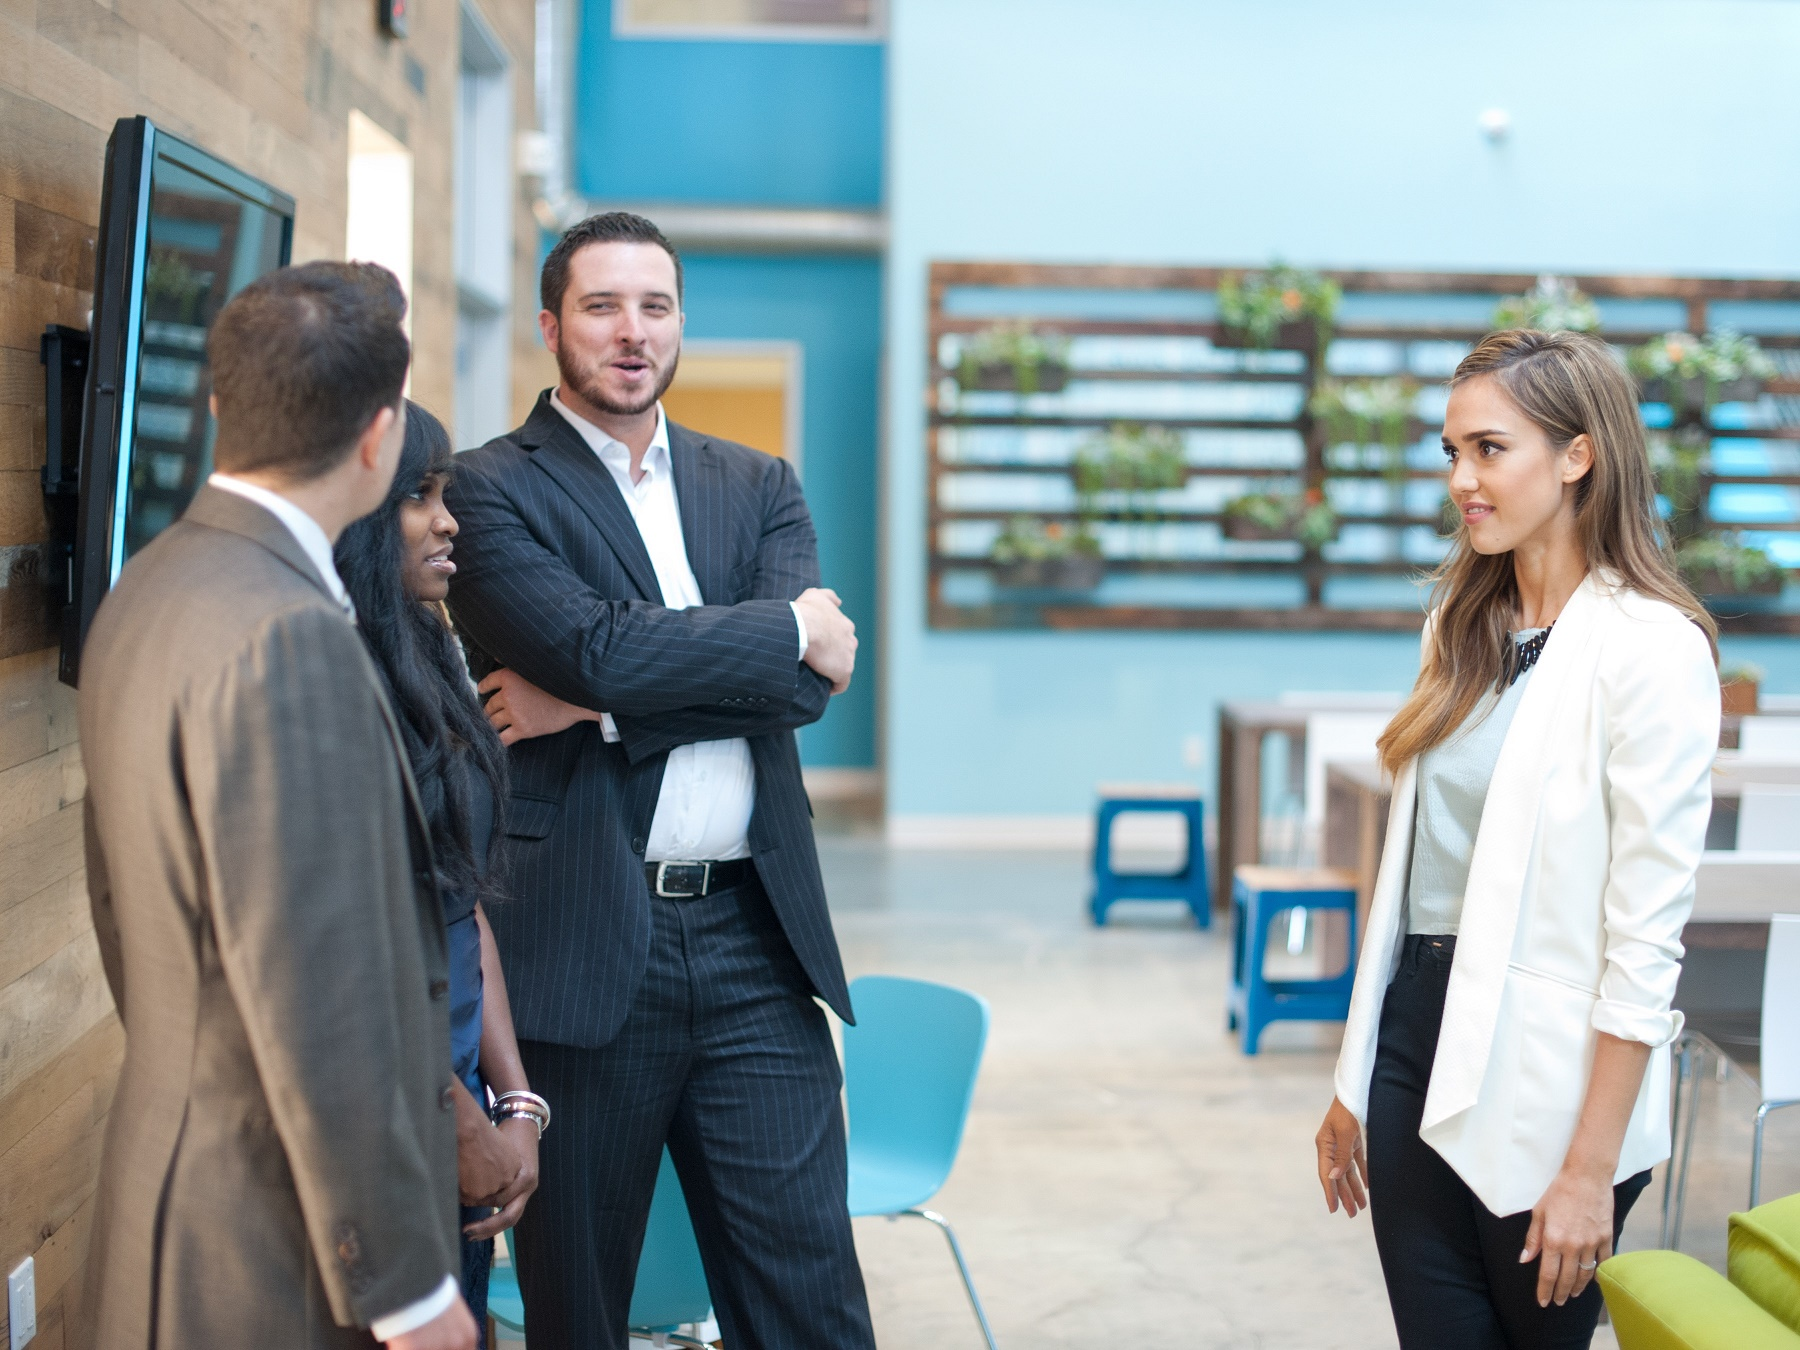 """Correspondent Jessica Alba speaks with Climate Corp Fellows Brendan Edgerton, Jenise Young, and Scott Miller at The Honest Company offices, from the segment """"Climate Corps."""" (Photo Credit: The Years Project/Courtesy of SHOWTIME)"""